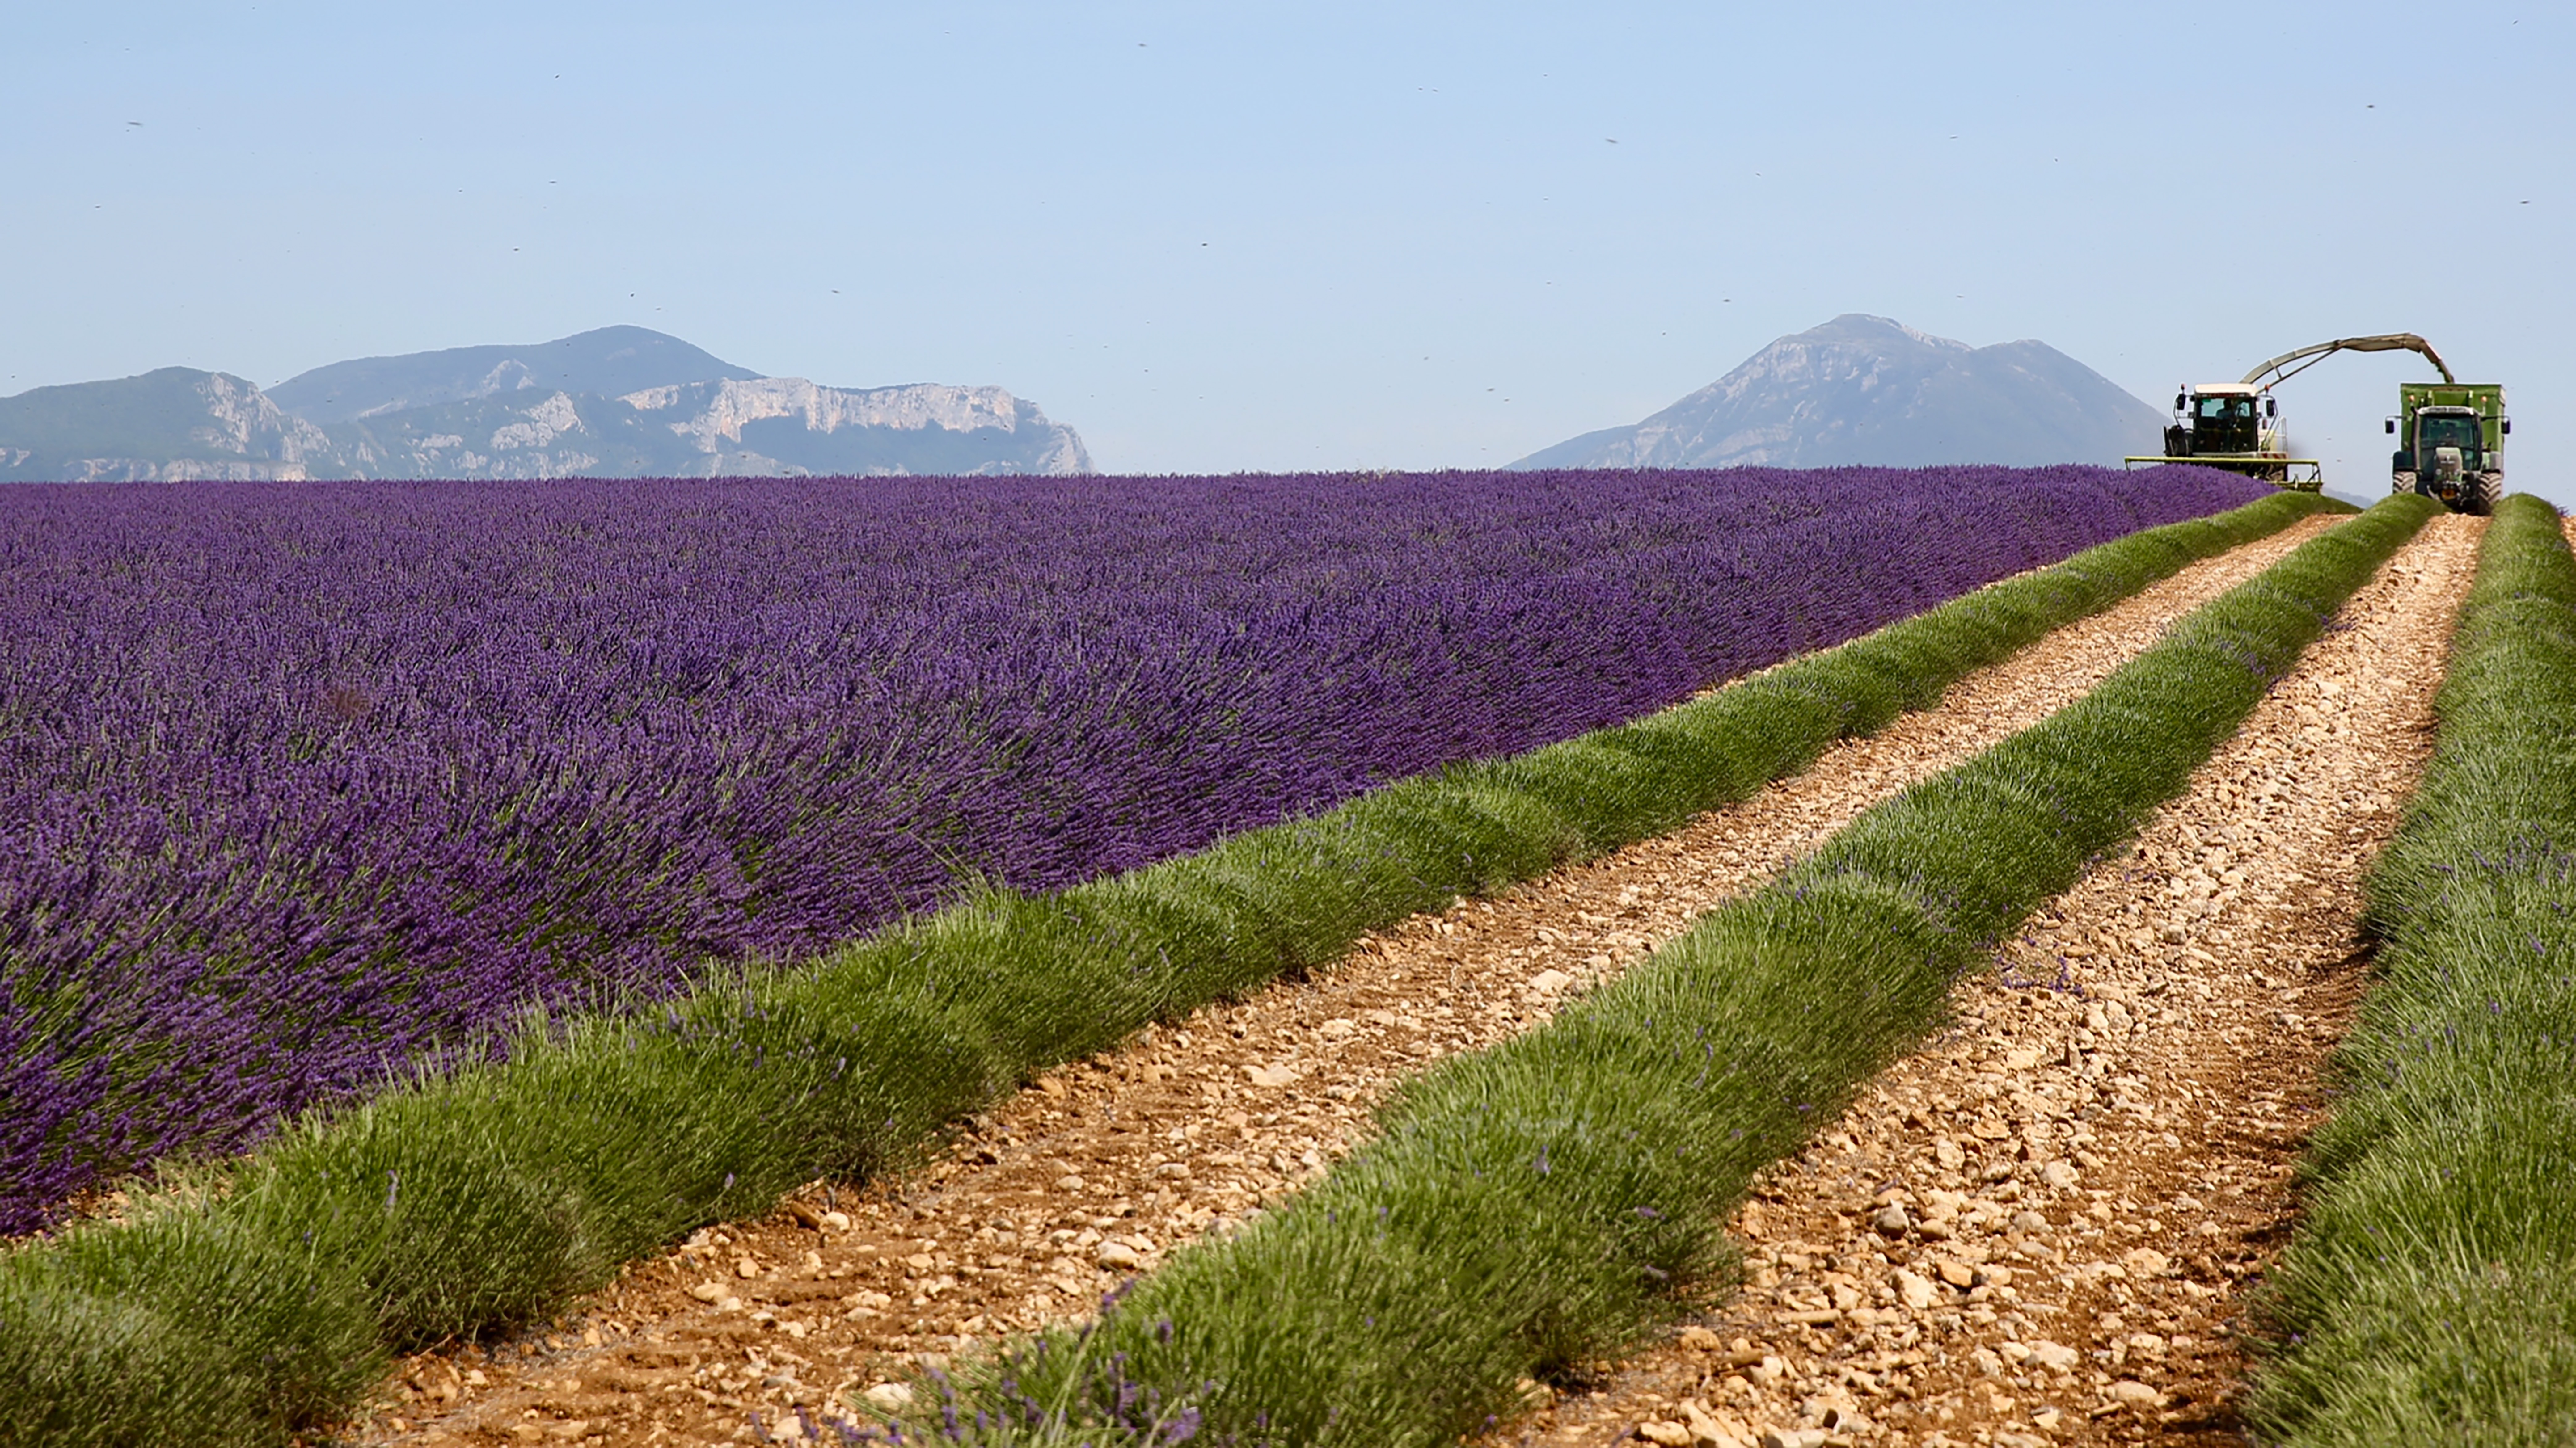 Photo taken by Mel Brown, CCO/Owner, visiting our lavender grower's fields in Bulgaria.